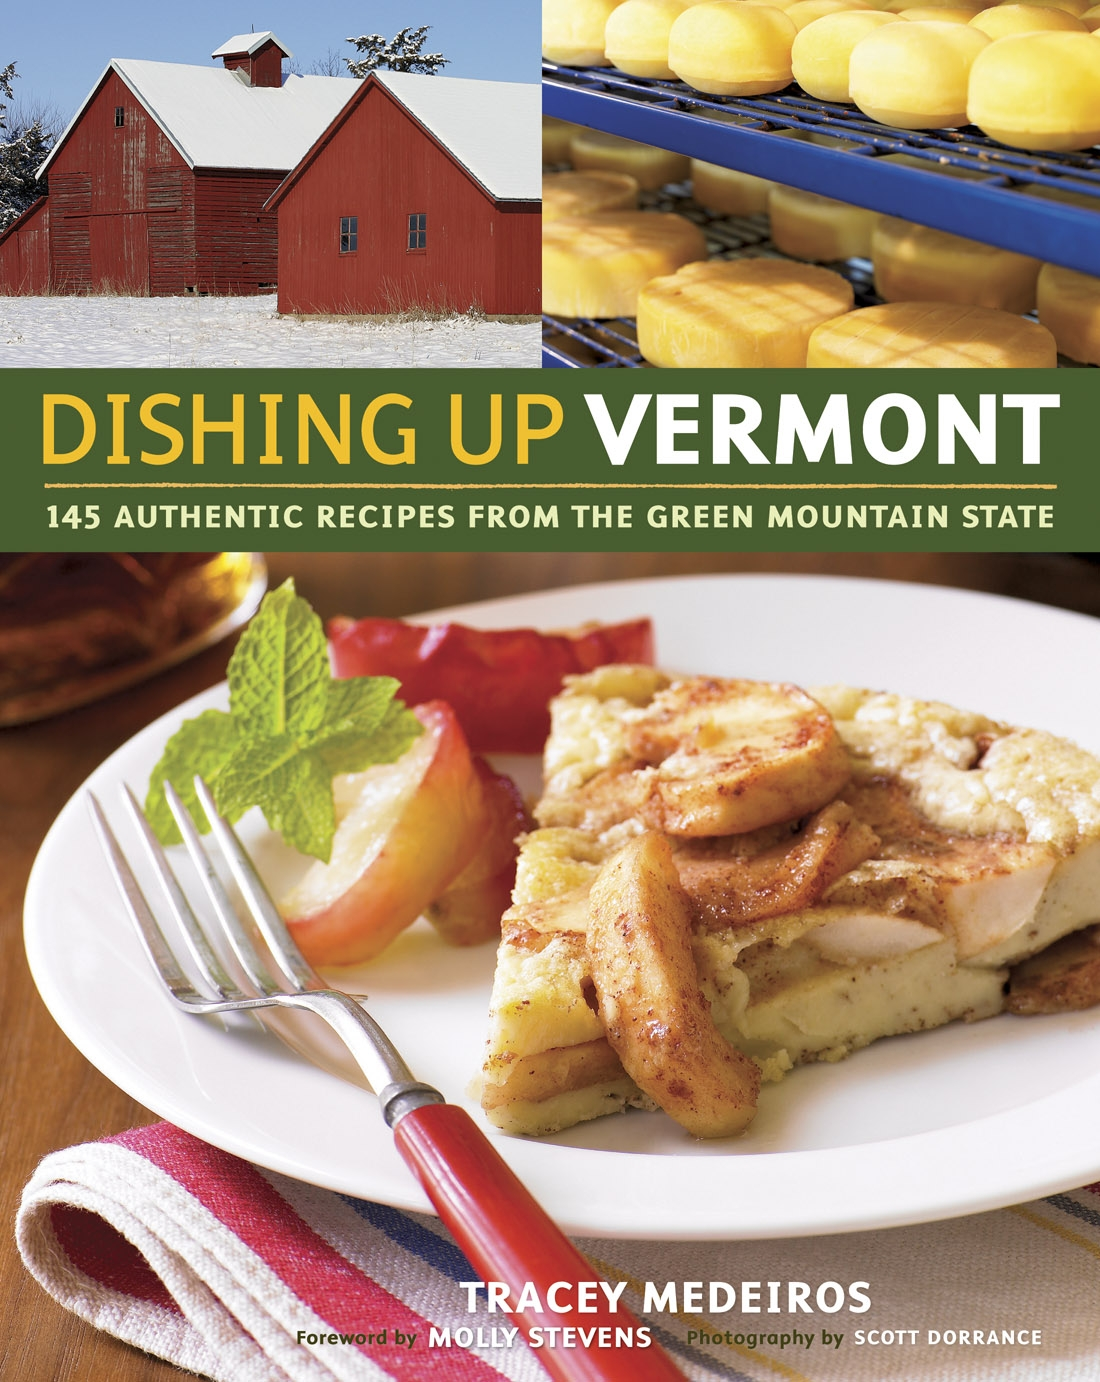 Dishing Up Vermont    The sharp tang of cheddar cheese and the earthy sweetness of maple syrup are Vermont's signature flavors. But they're just the tip of the Vermont food pyramid. Dairy farms support cheese production that goes far beyond classic cheddars. Farmers coax an impressive variety and quantity of produce from land that's buried under snow for many months of the year. Game animals, rabbits, and traditional livestock thrive on small family farms where the farmers are committed to using sustainable, organic methods.  Taking advantage of this wonderful food are innovative chefs trained to bring out the best in their ingredients, B&B owners who take pride in their robust country breakfasts, and the farmers themselves who love sharing the recipes that make their products shine.  Dishing Up Vermont , a collection of recipes from a broad range of cooks dedicated to sustaining and enriching local culinary traditions, celebrates the classic taste of the Green Mountain state with fresh interpretations of everything from blueberry pancakes sweetened with maple syrup to a savory tart made with onions, apples, and Grafton Cheddar.  This insider's view of Vermont cooking is rounded out with profiles of the people and places that make the state's food scene so exciting. Here are classically trained chefs, home bakers, farmers, winemakers, comfort-food cooks, beekeepers, orchard and sugar-shack owners, craft brewers, and all the other foodies who keep Vermont traditions alive while developing vibrant new flavor combinations that respect the integrity of the raw ingredients.   Storey Publishing, LLC   210 Mass MoCA Way   North Adams, MA 01247   Tel: (800) 827-8673   Fax: (800) 865-3429    Link to Amazon.com